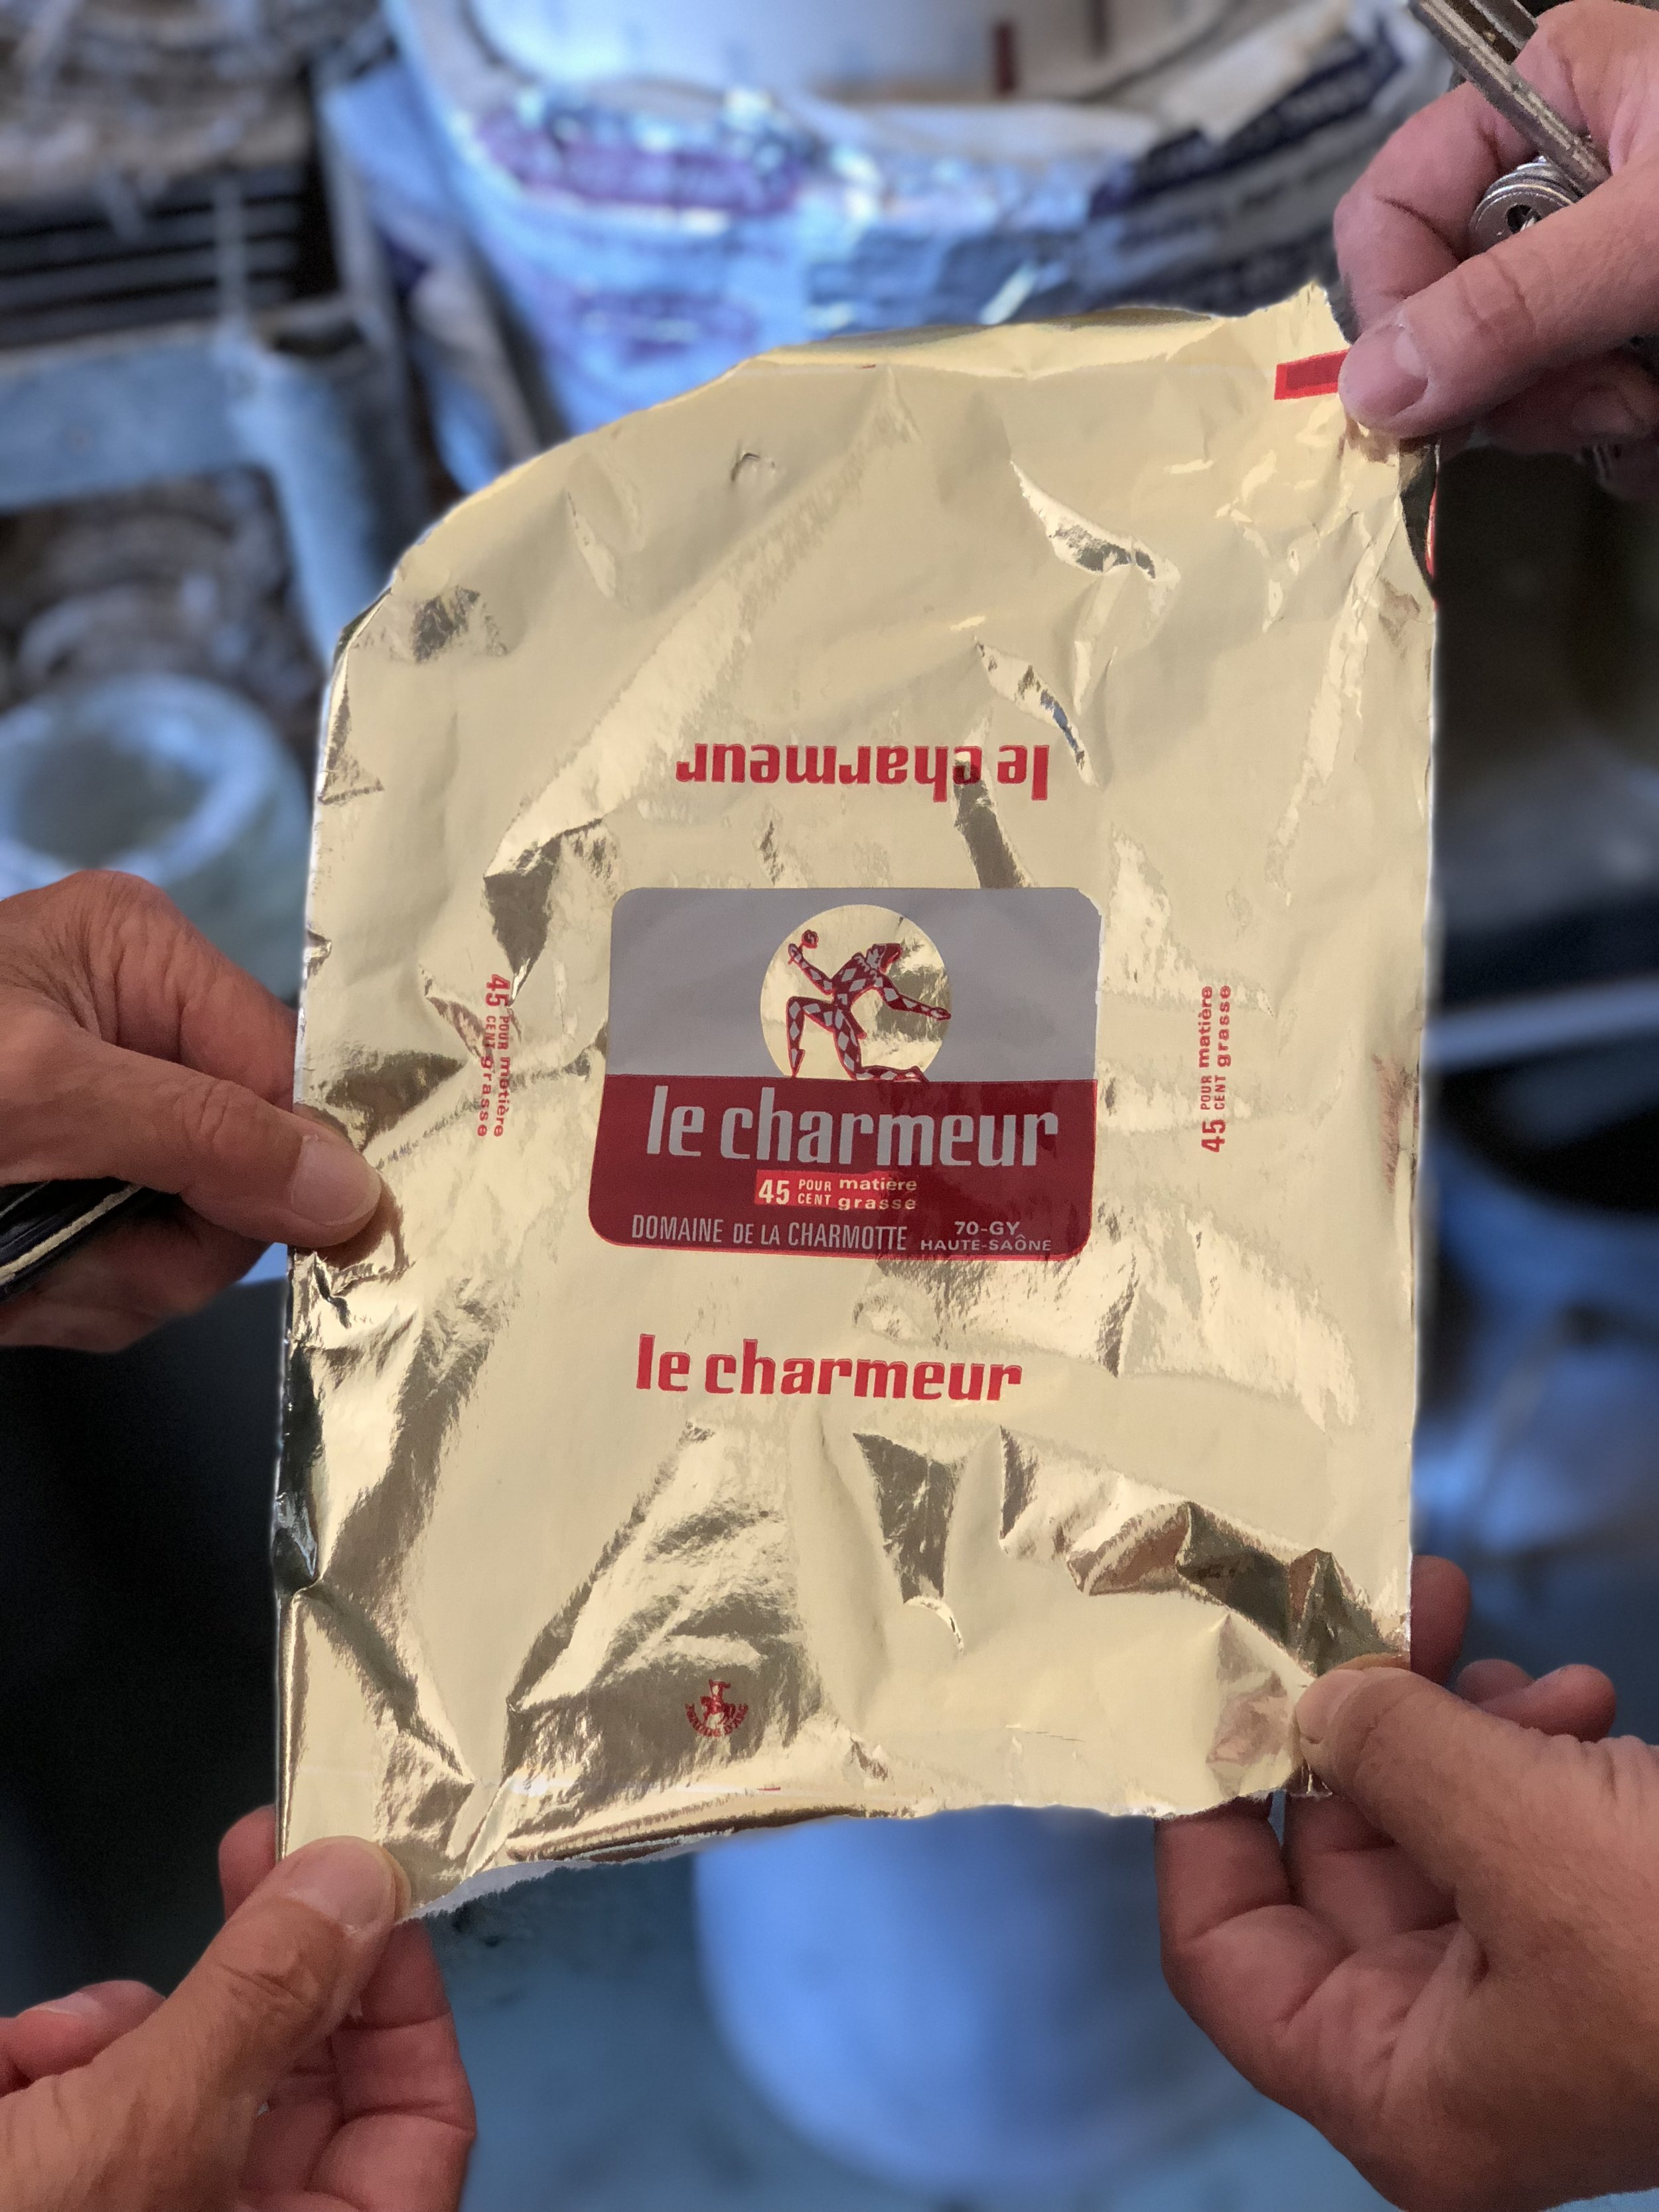 a souvenir torn from the last roll of gold paper used to package the cheese